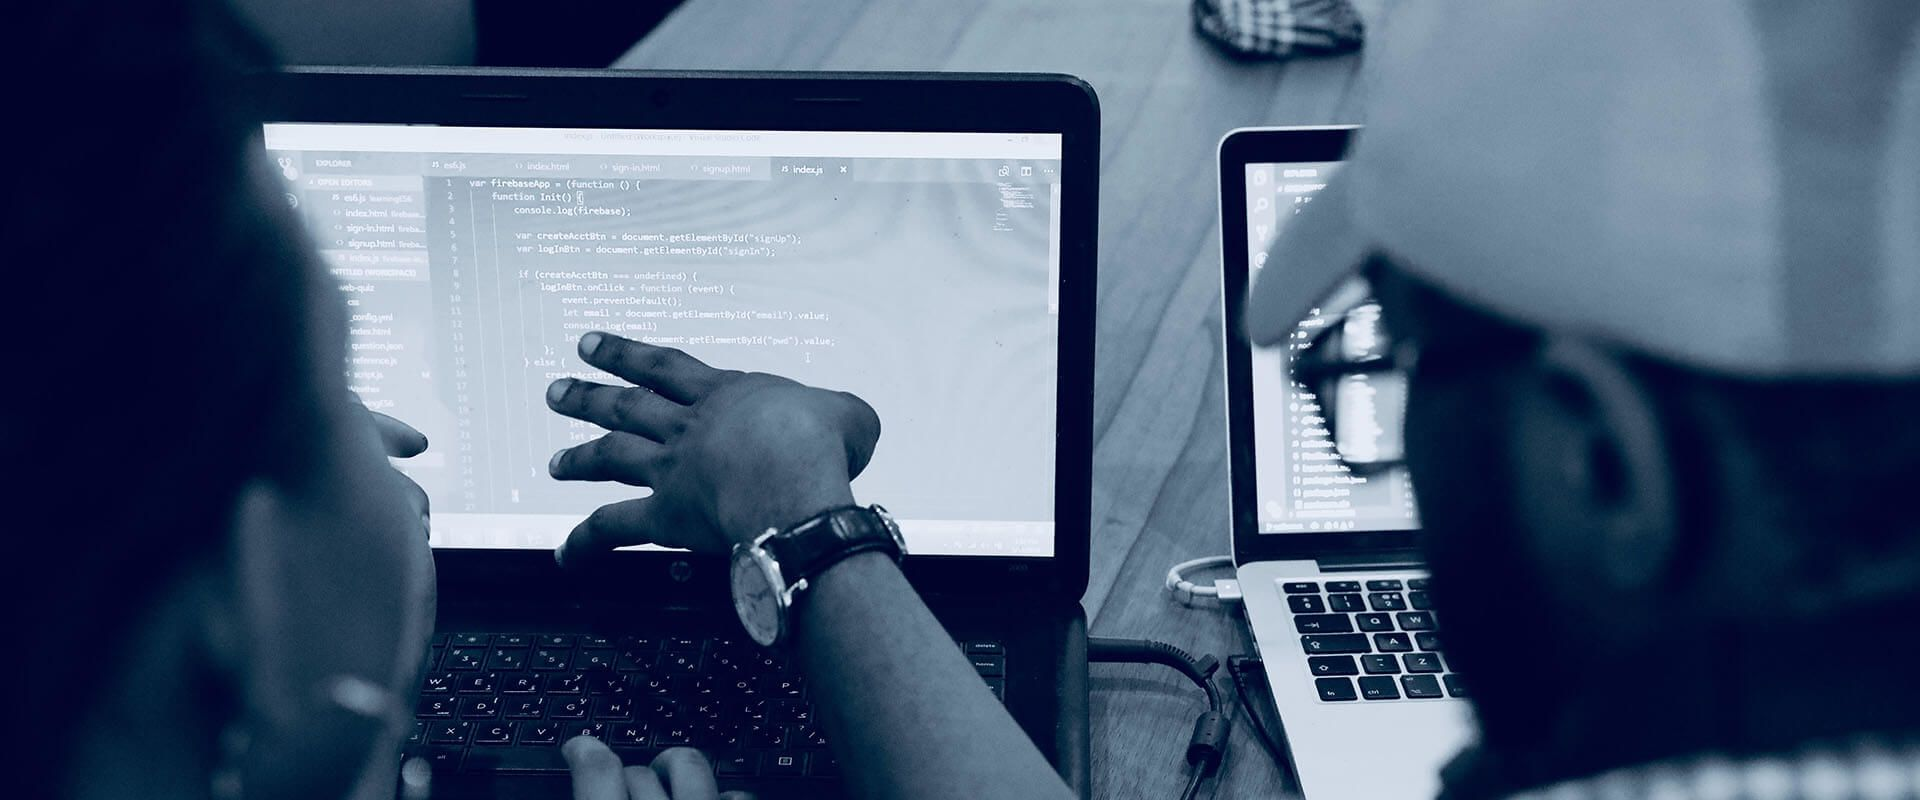 How to Run an Effective Coding Challenge